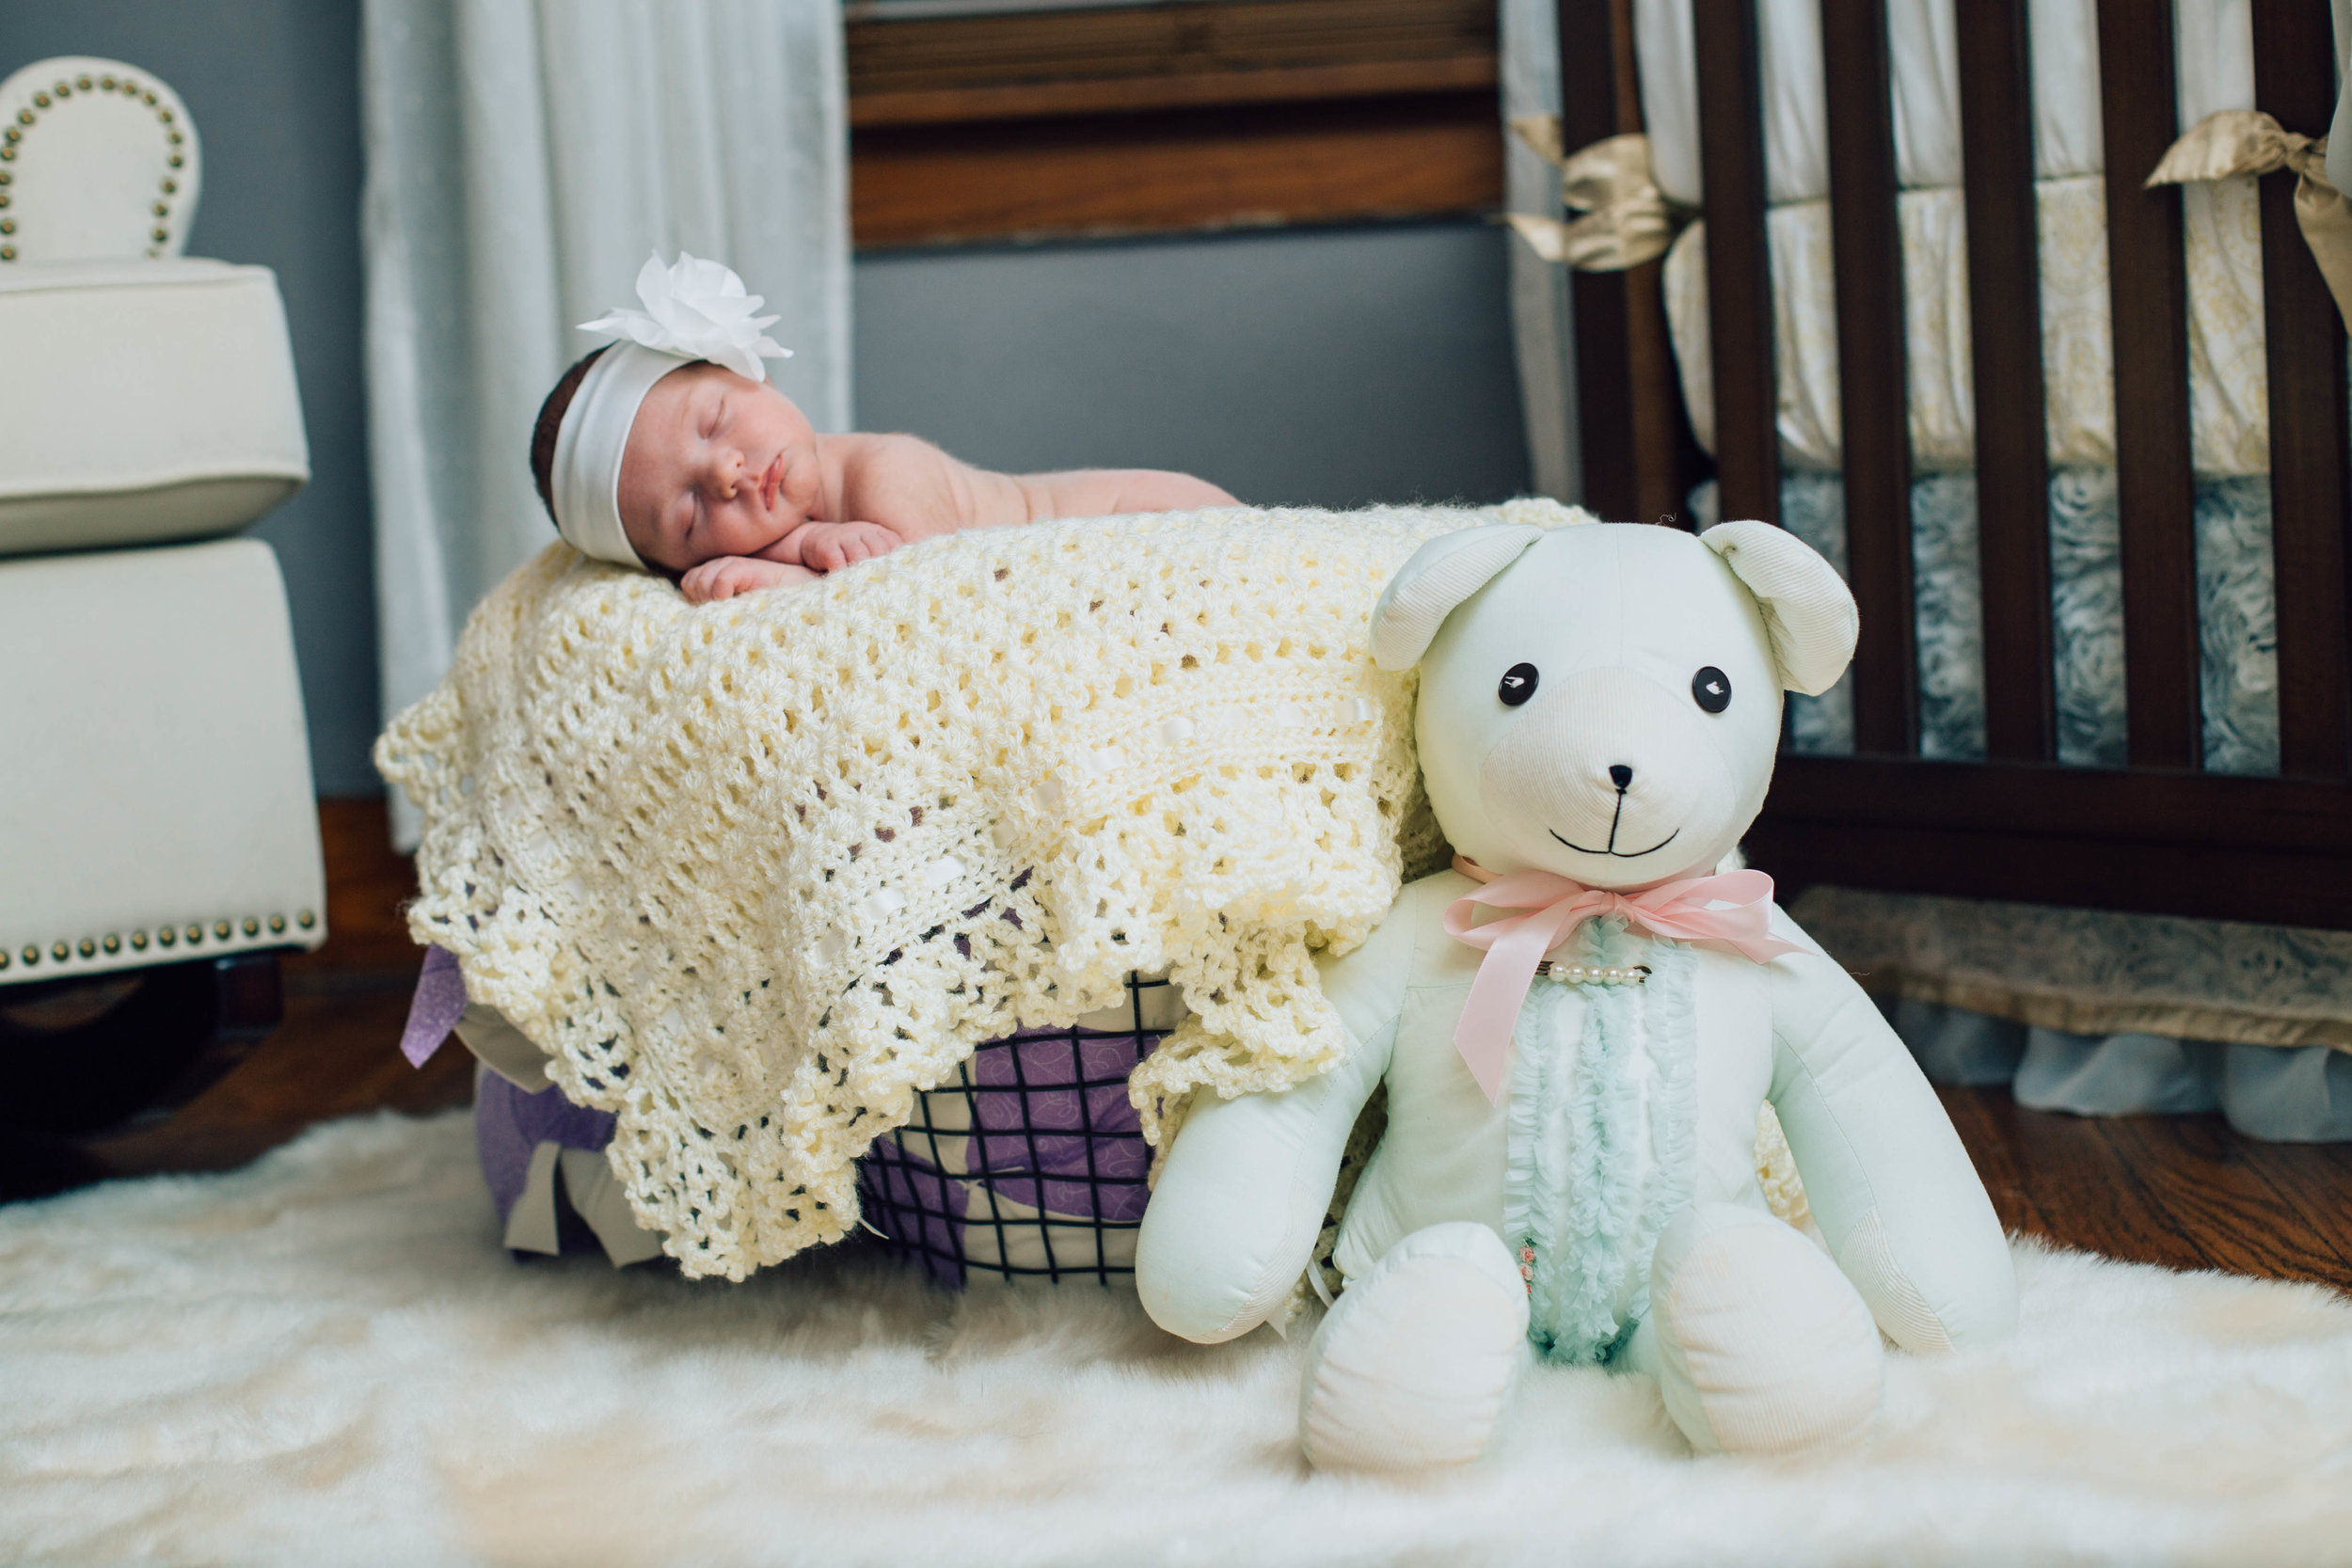 I love featuring homemade gifts and family heirlooms in newborn photos. This bear was actually made for her Grandmother many years ago. It is in pristine condition. The blankets are all handmade gifts. SO special!